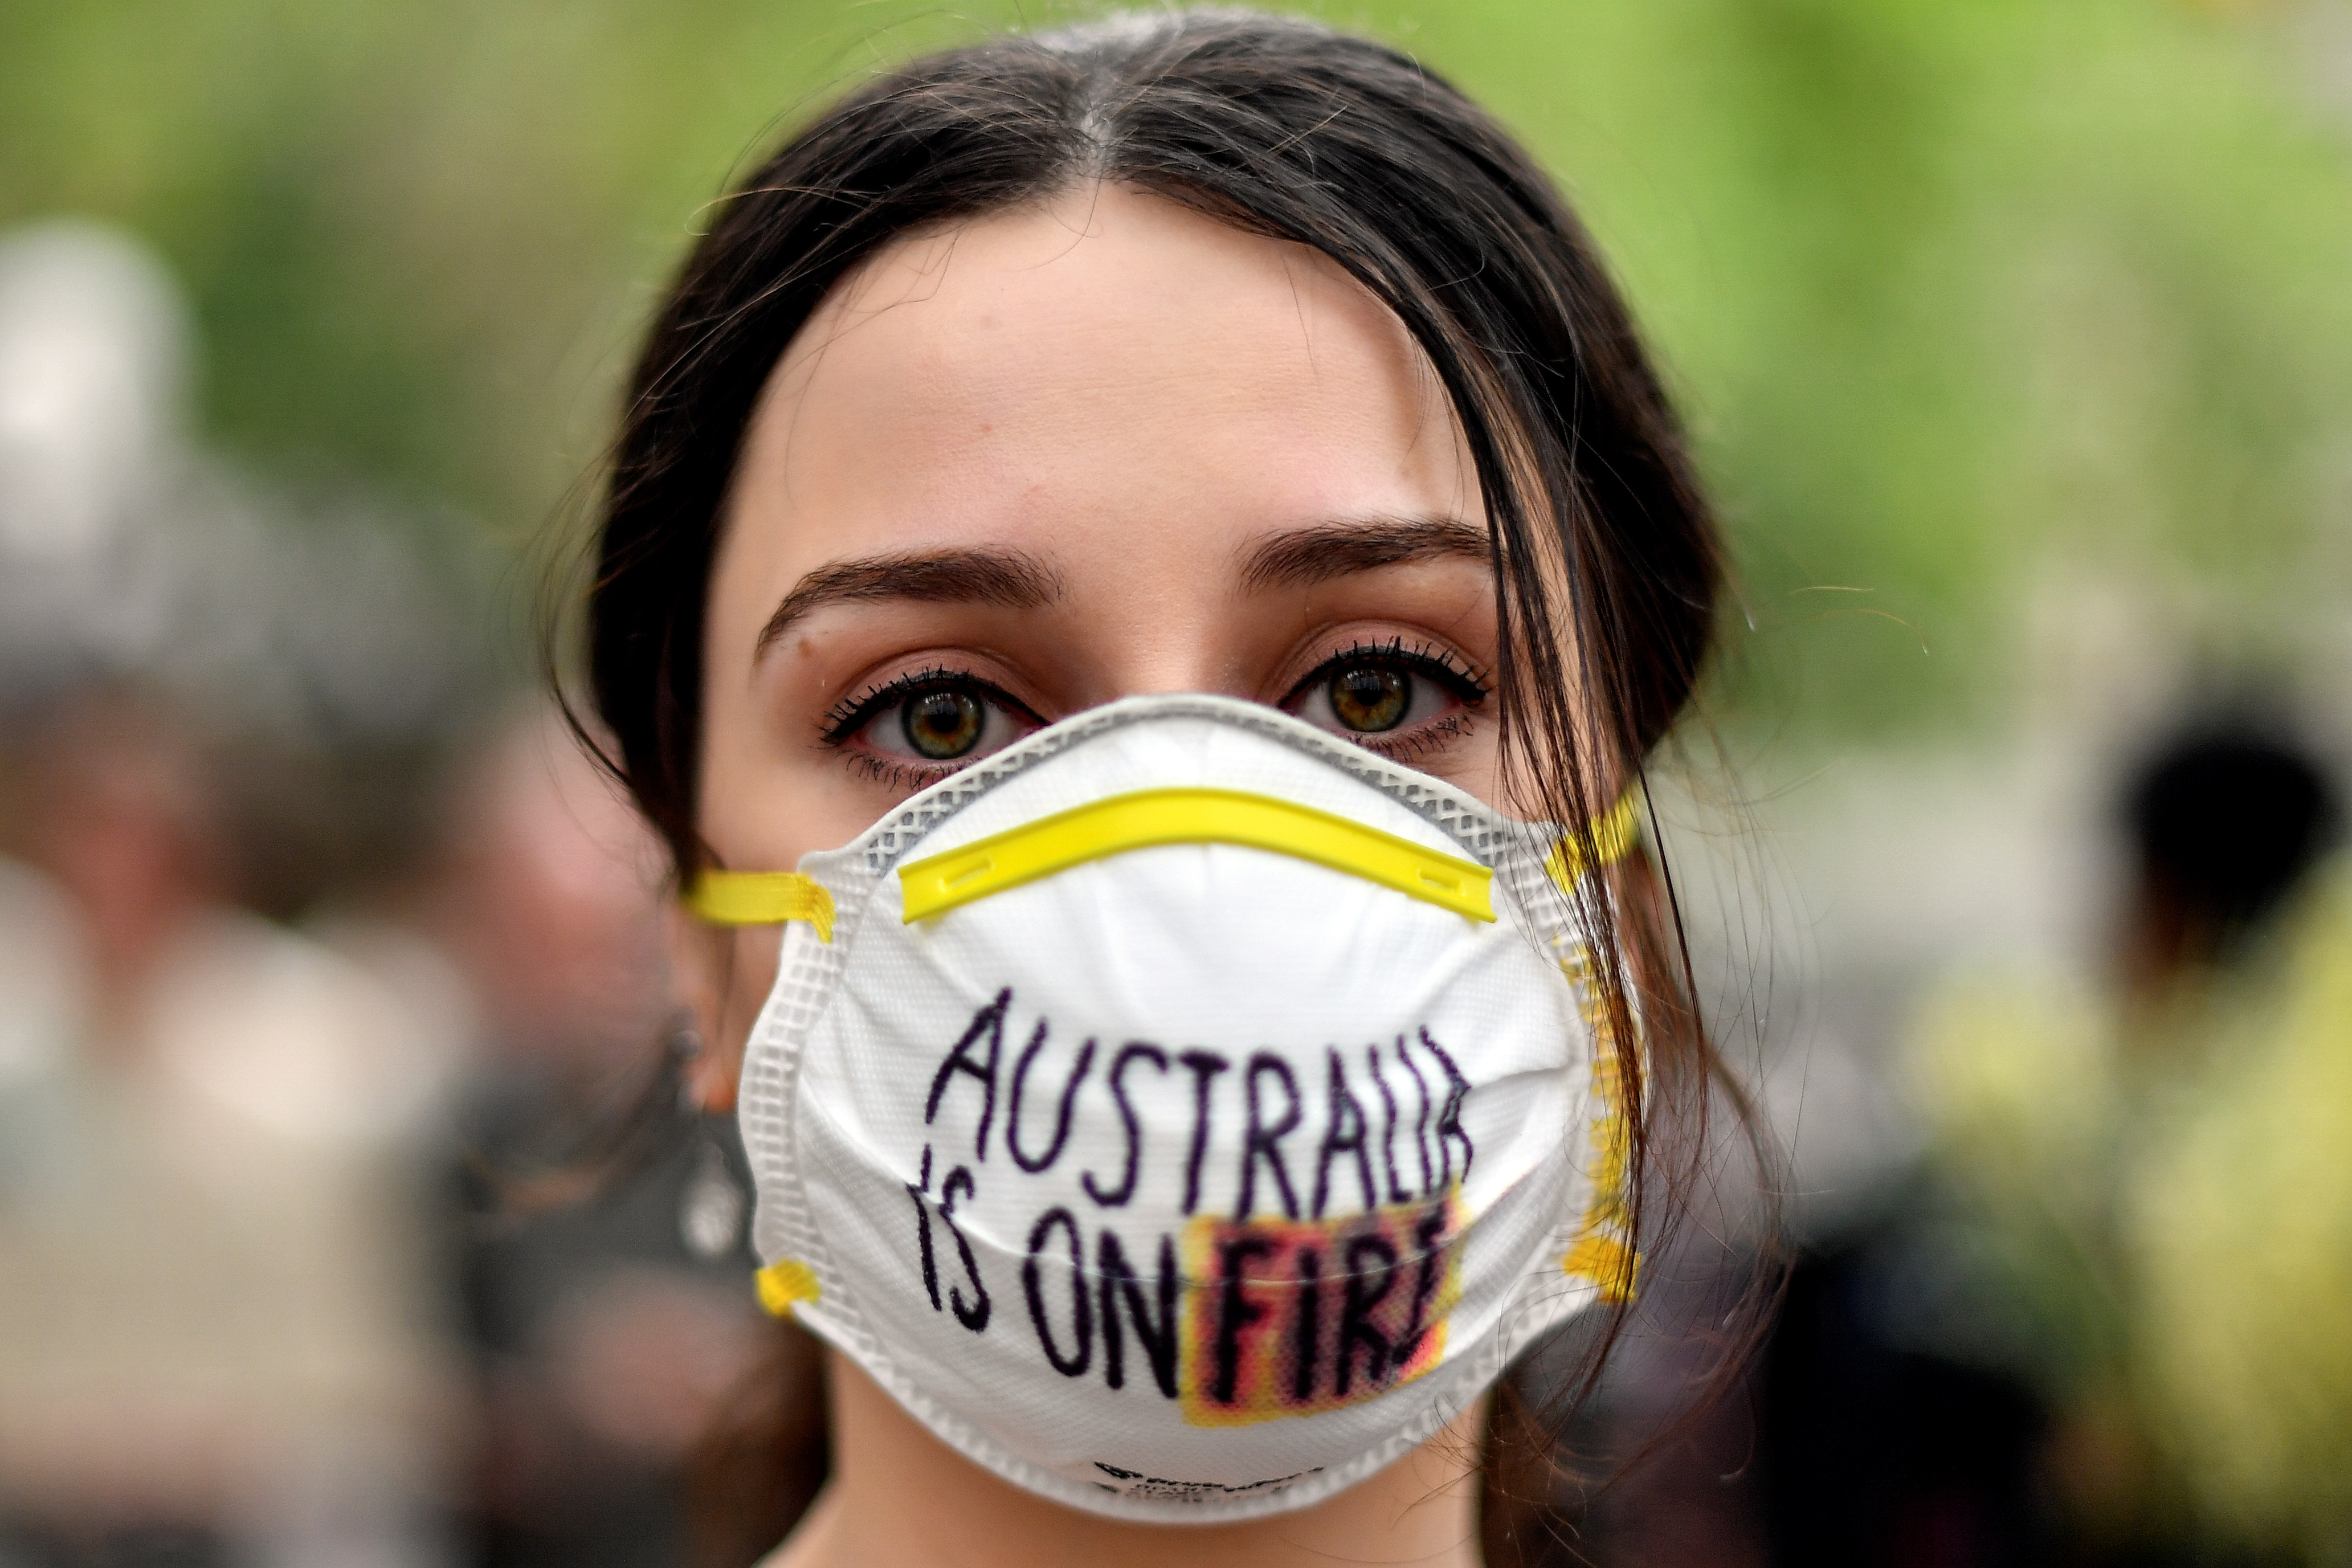 Aussie PM breaks silence on 'troubling' smoke crisis